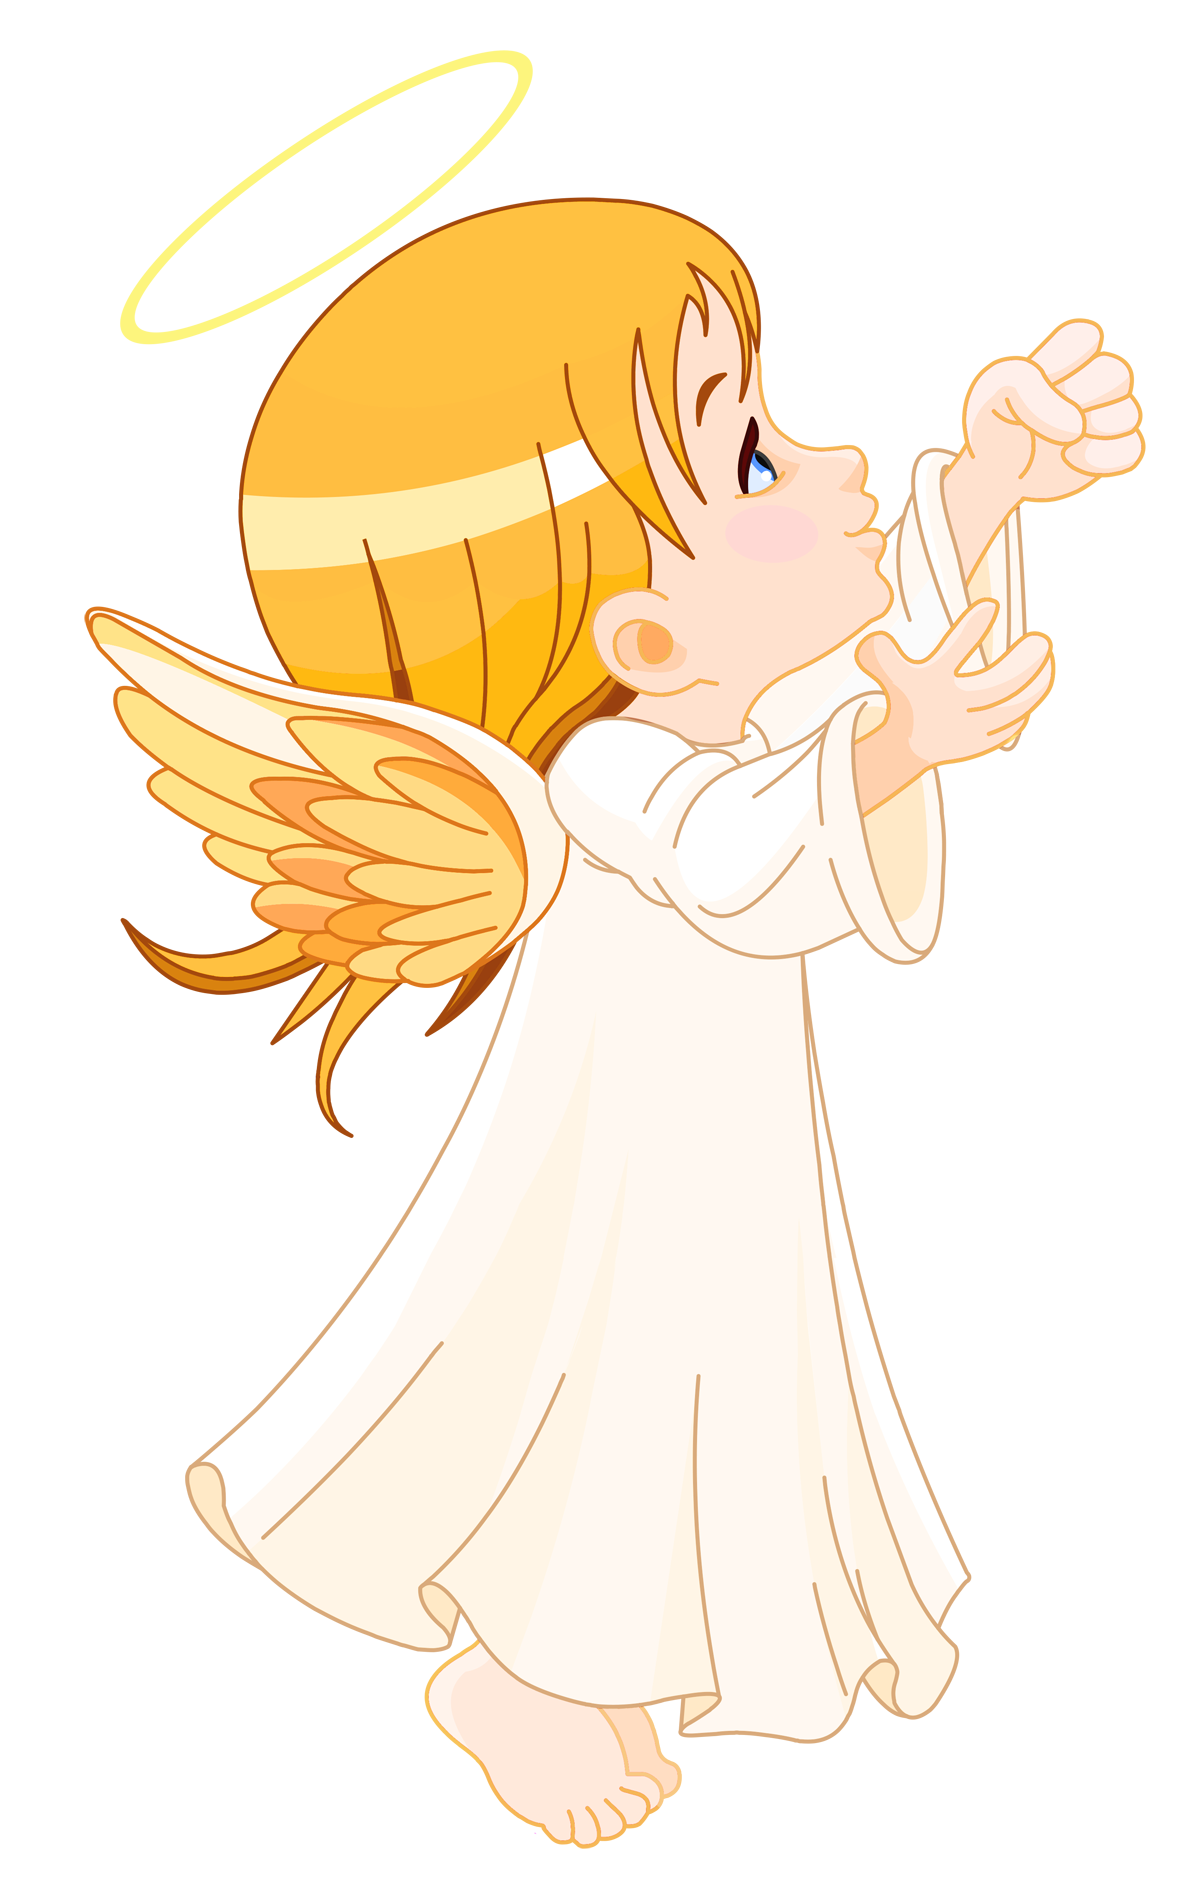 transparent library It s god kindness. Angel clipart clip